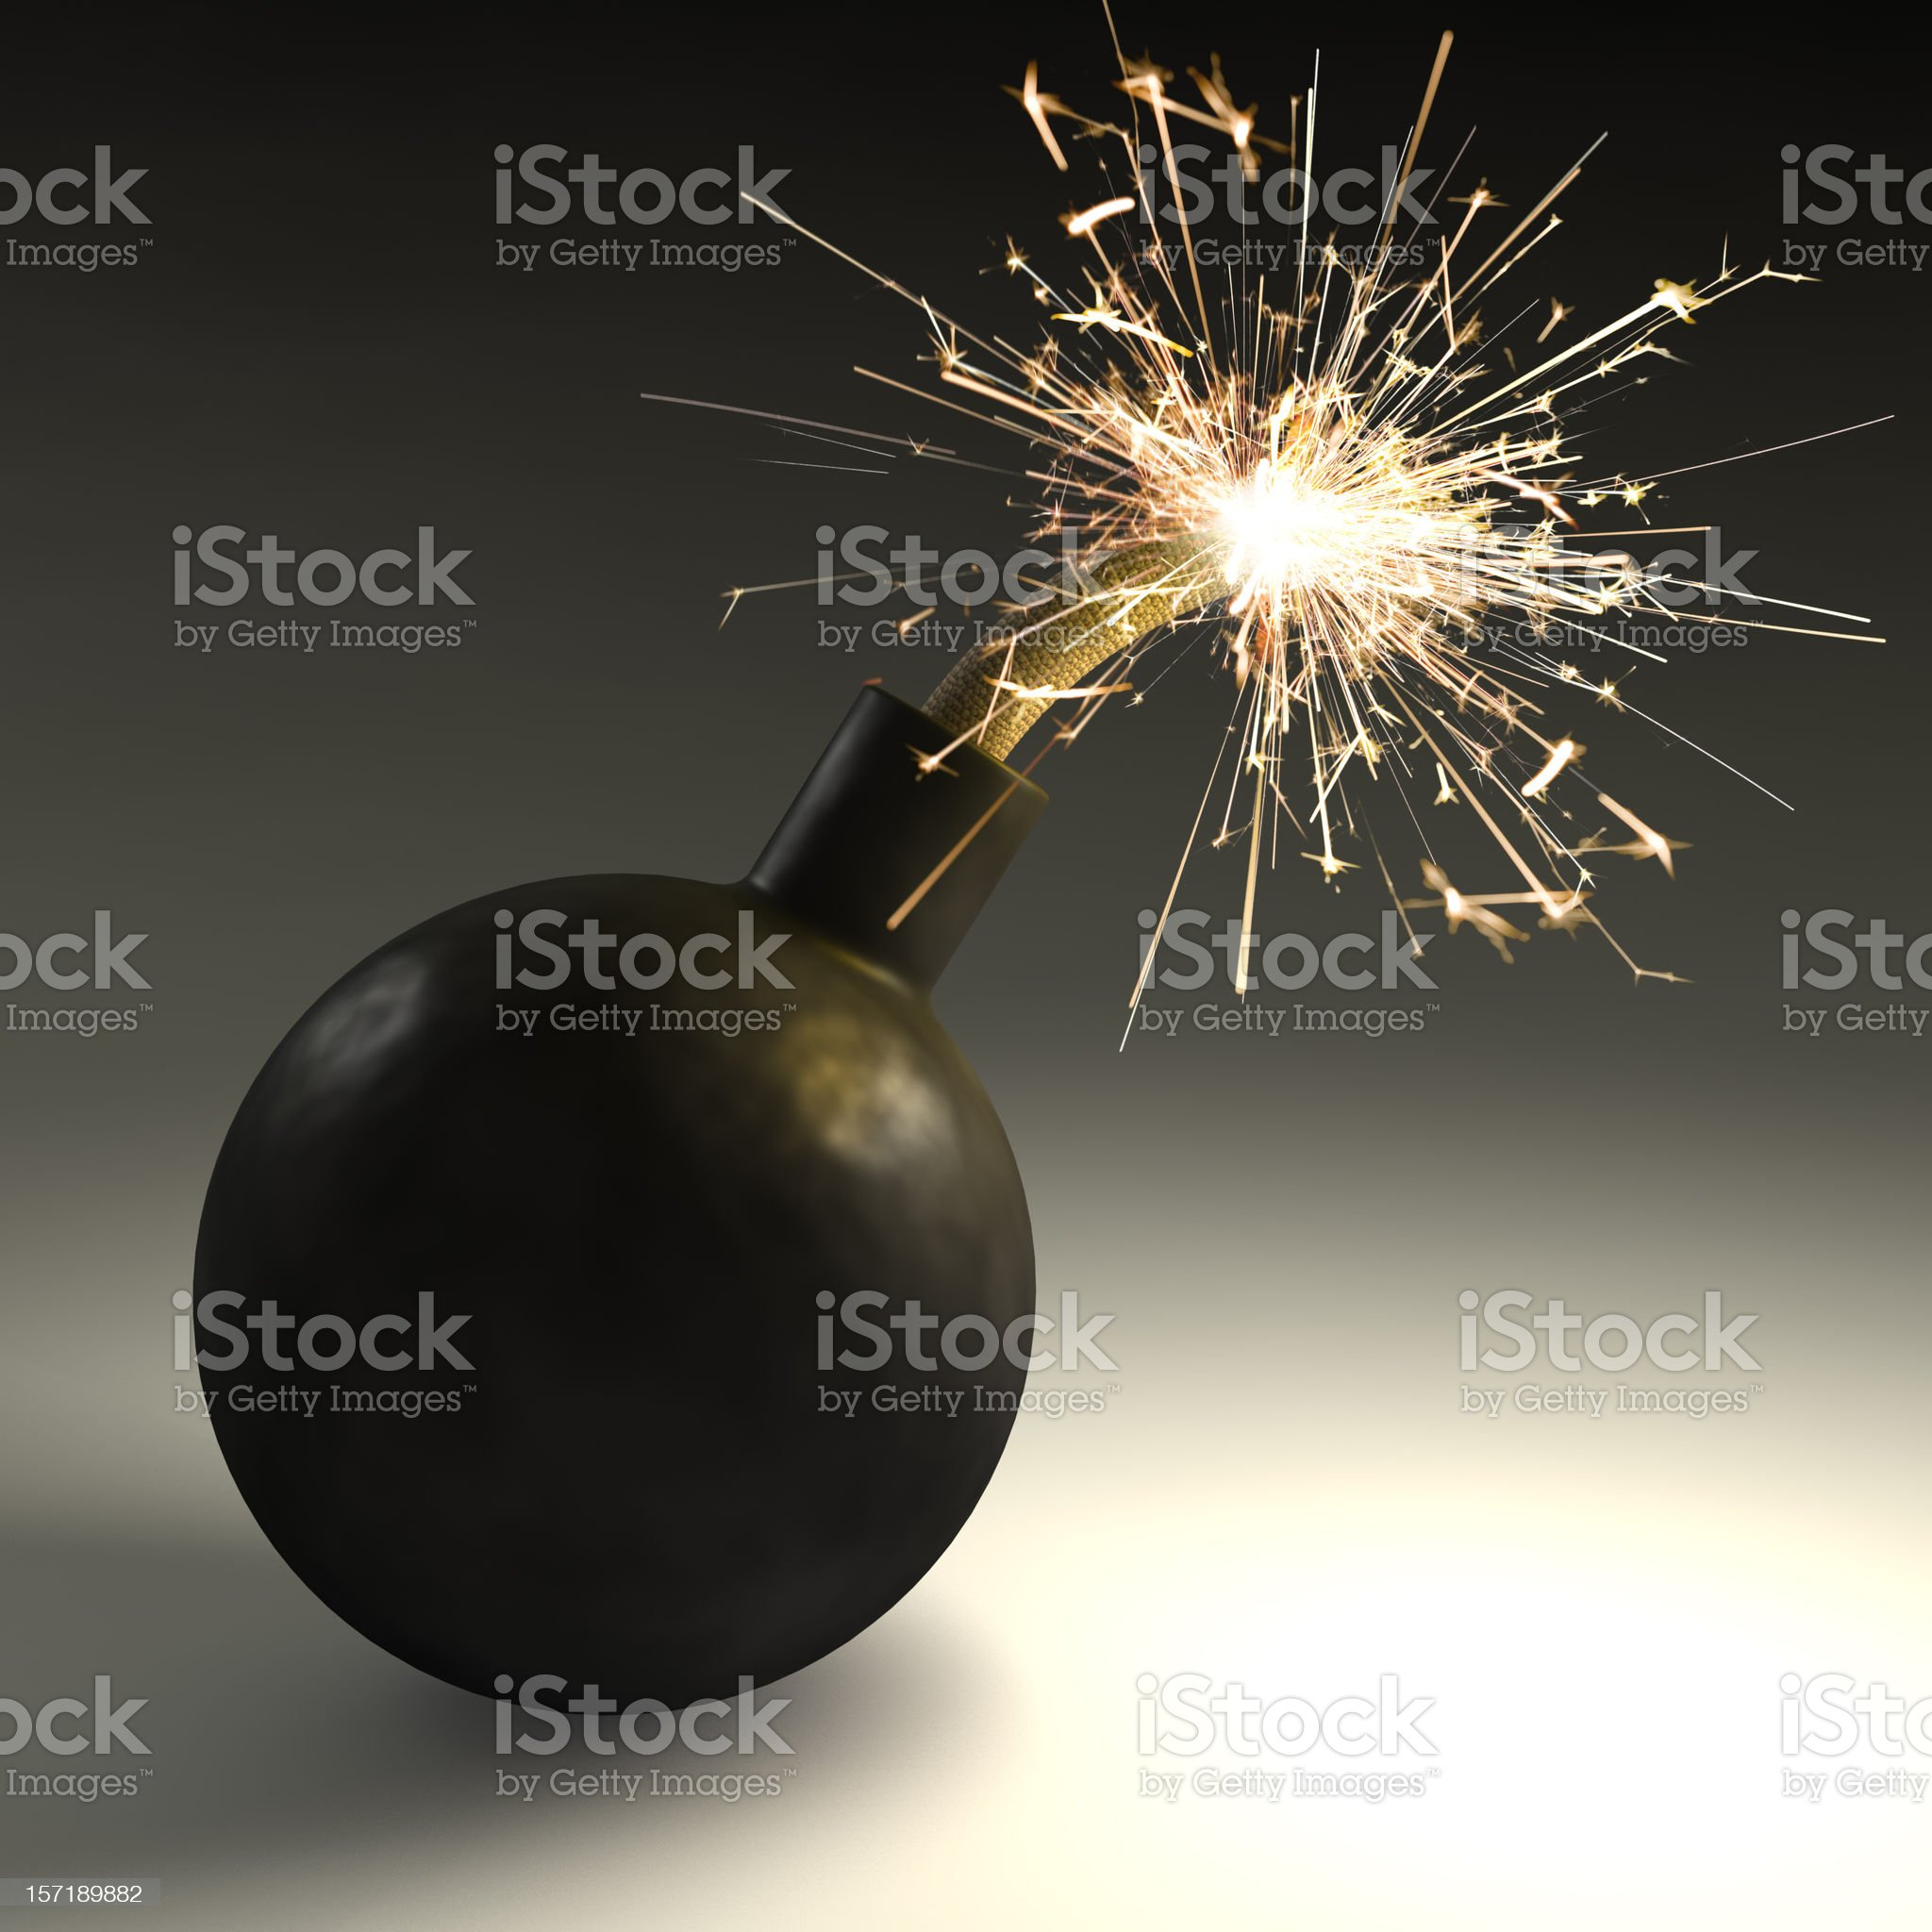 A black bomb with sparks coming out of the top royalty-free stock photo